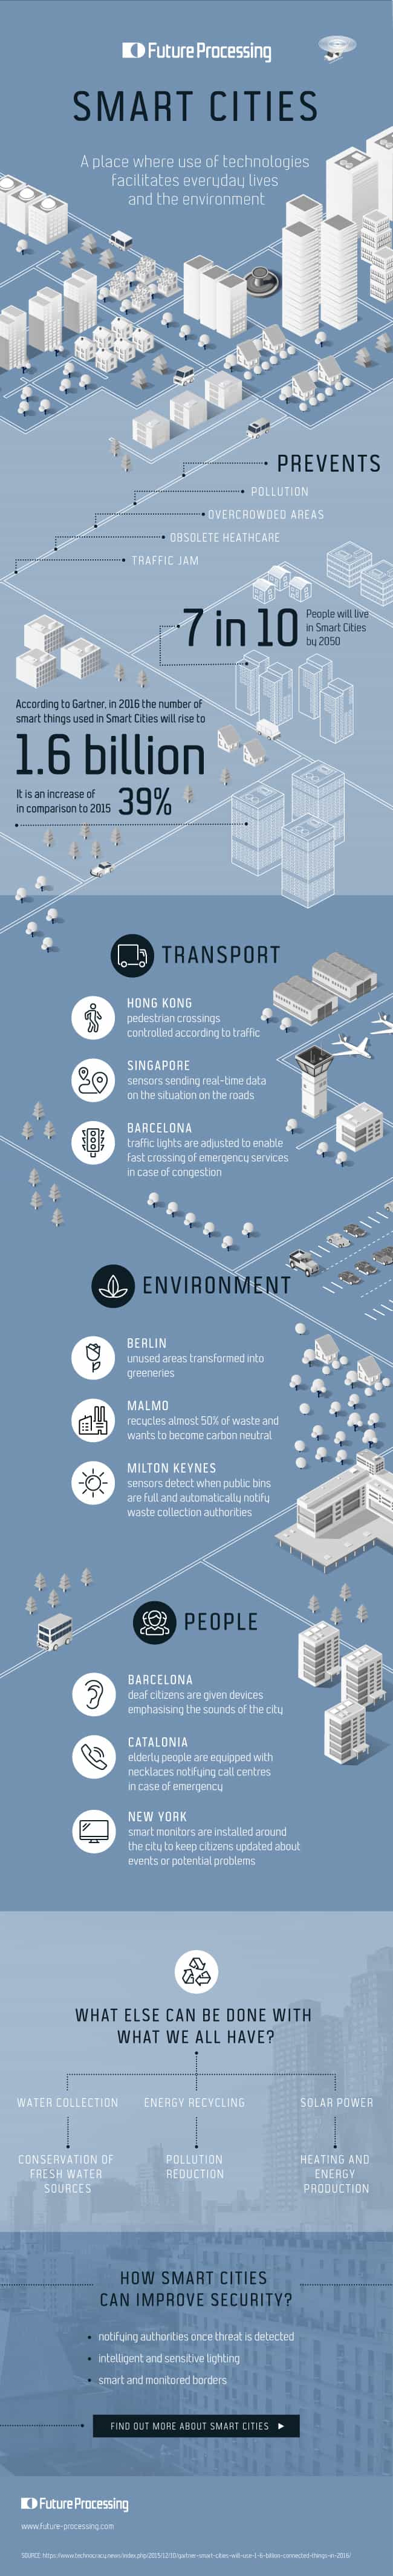 How smart cities use technology to improve life